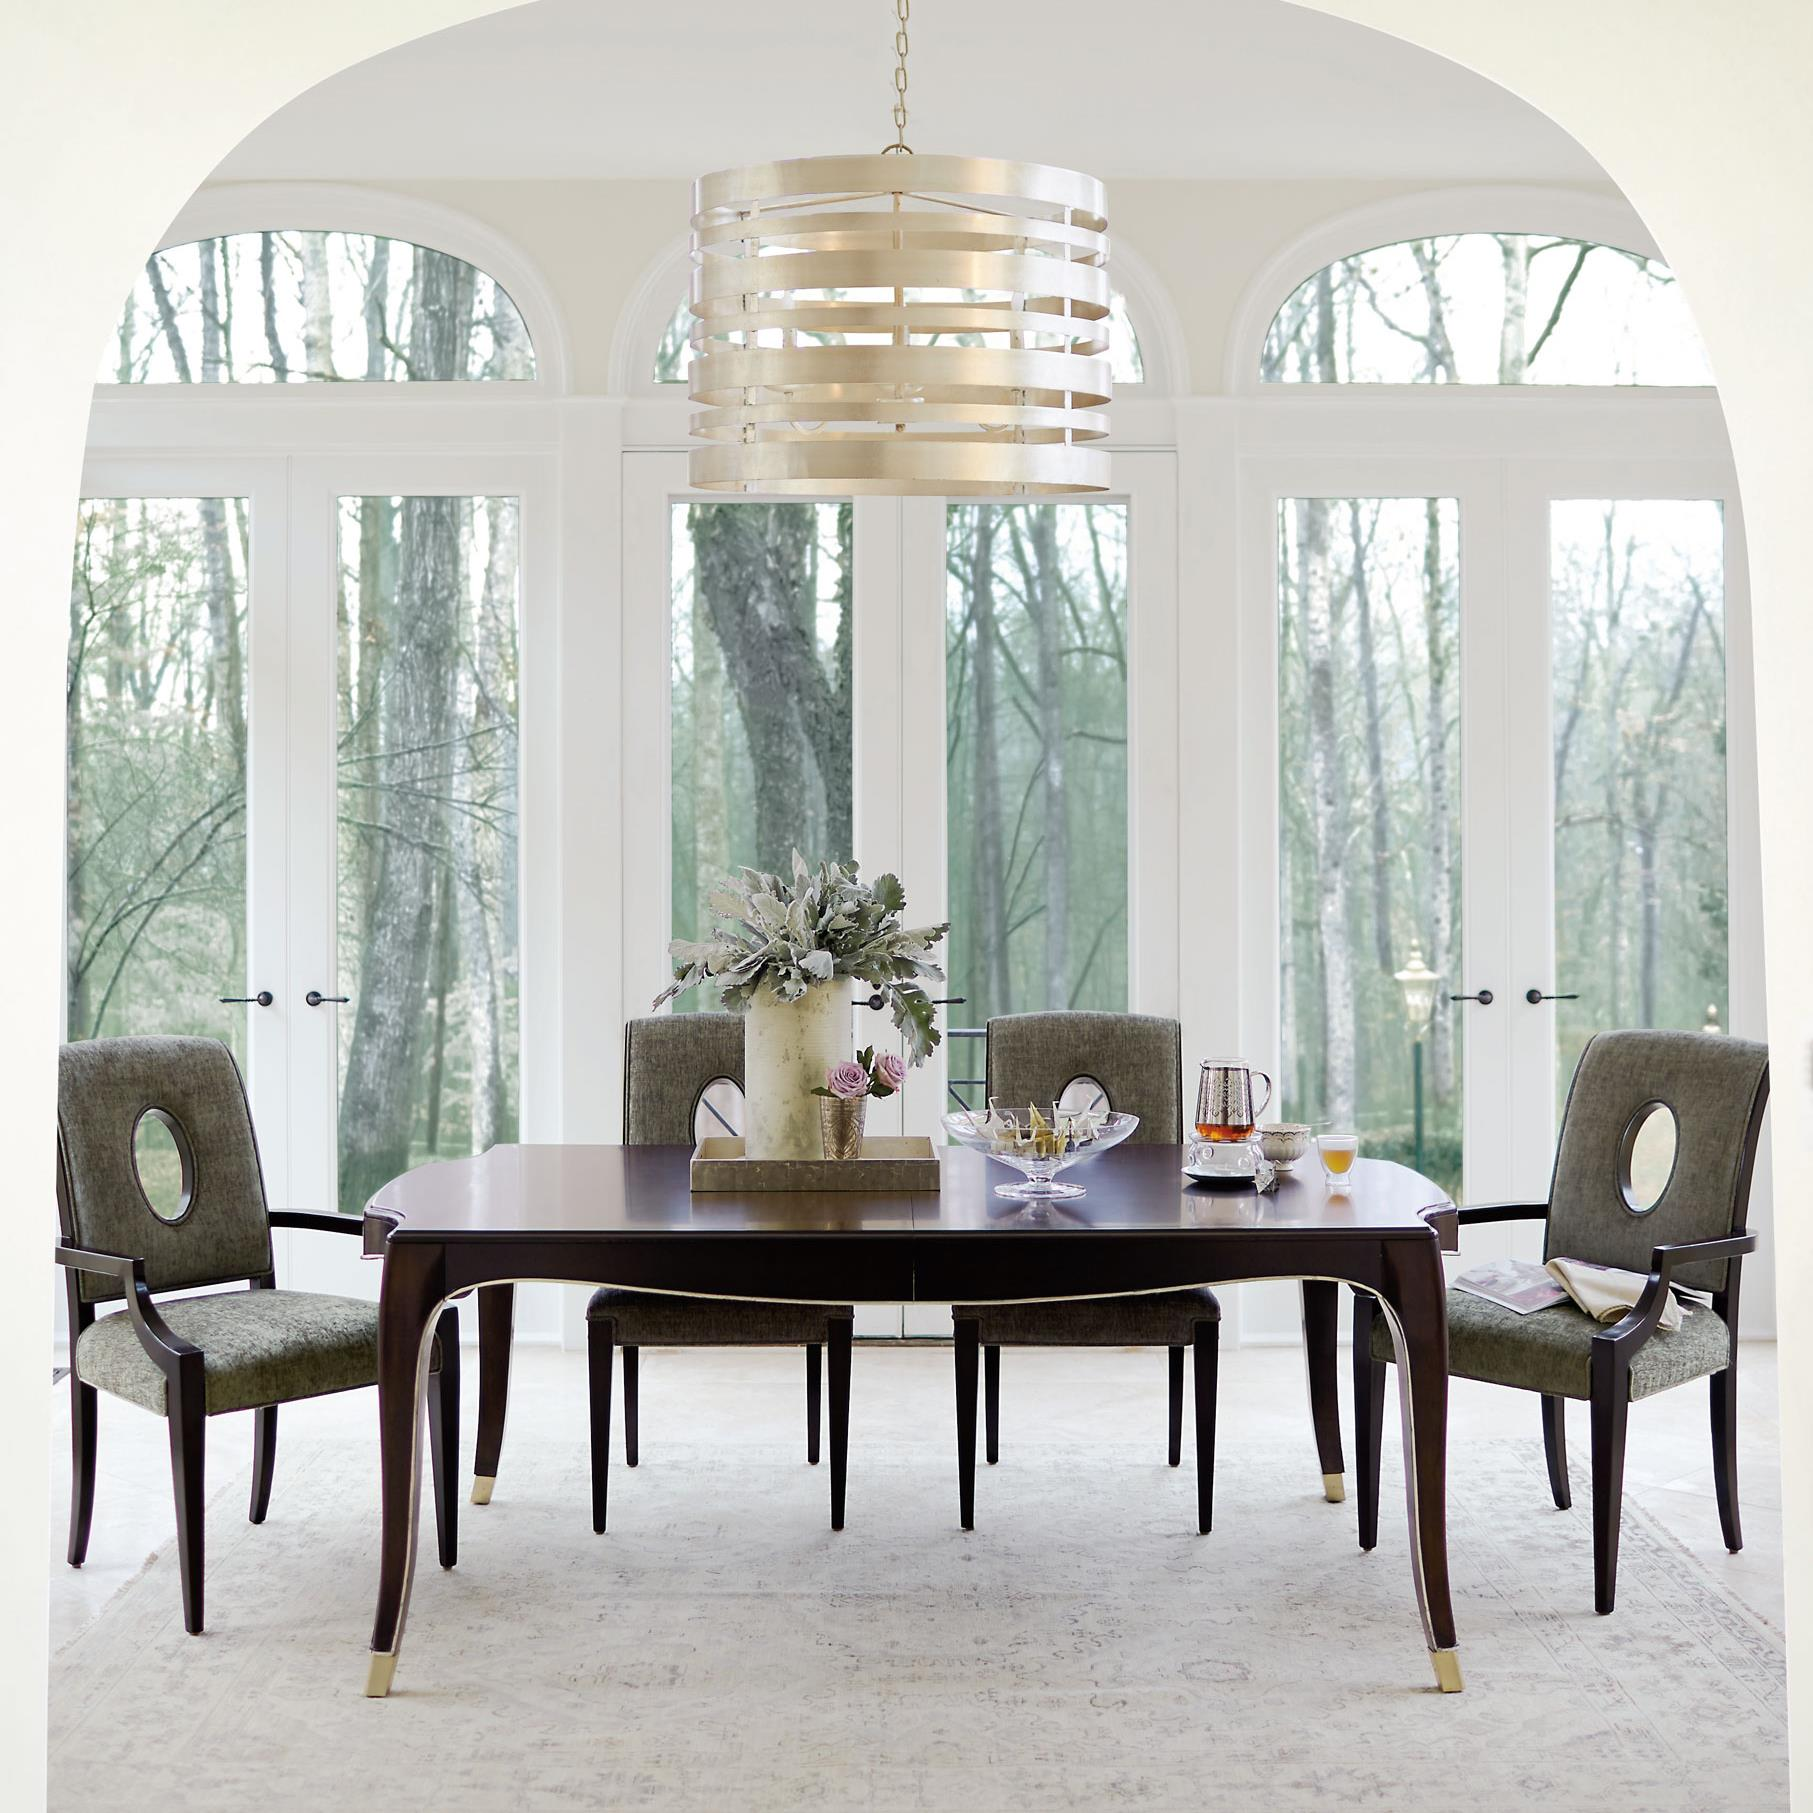 Bernhardt Miramont 5 Piece Dining Table And Chair Set